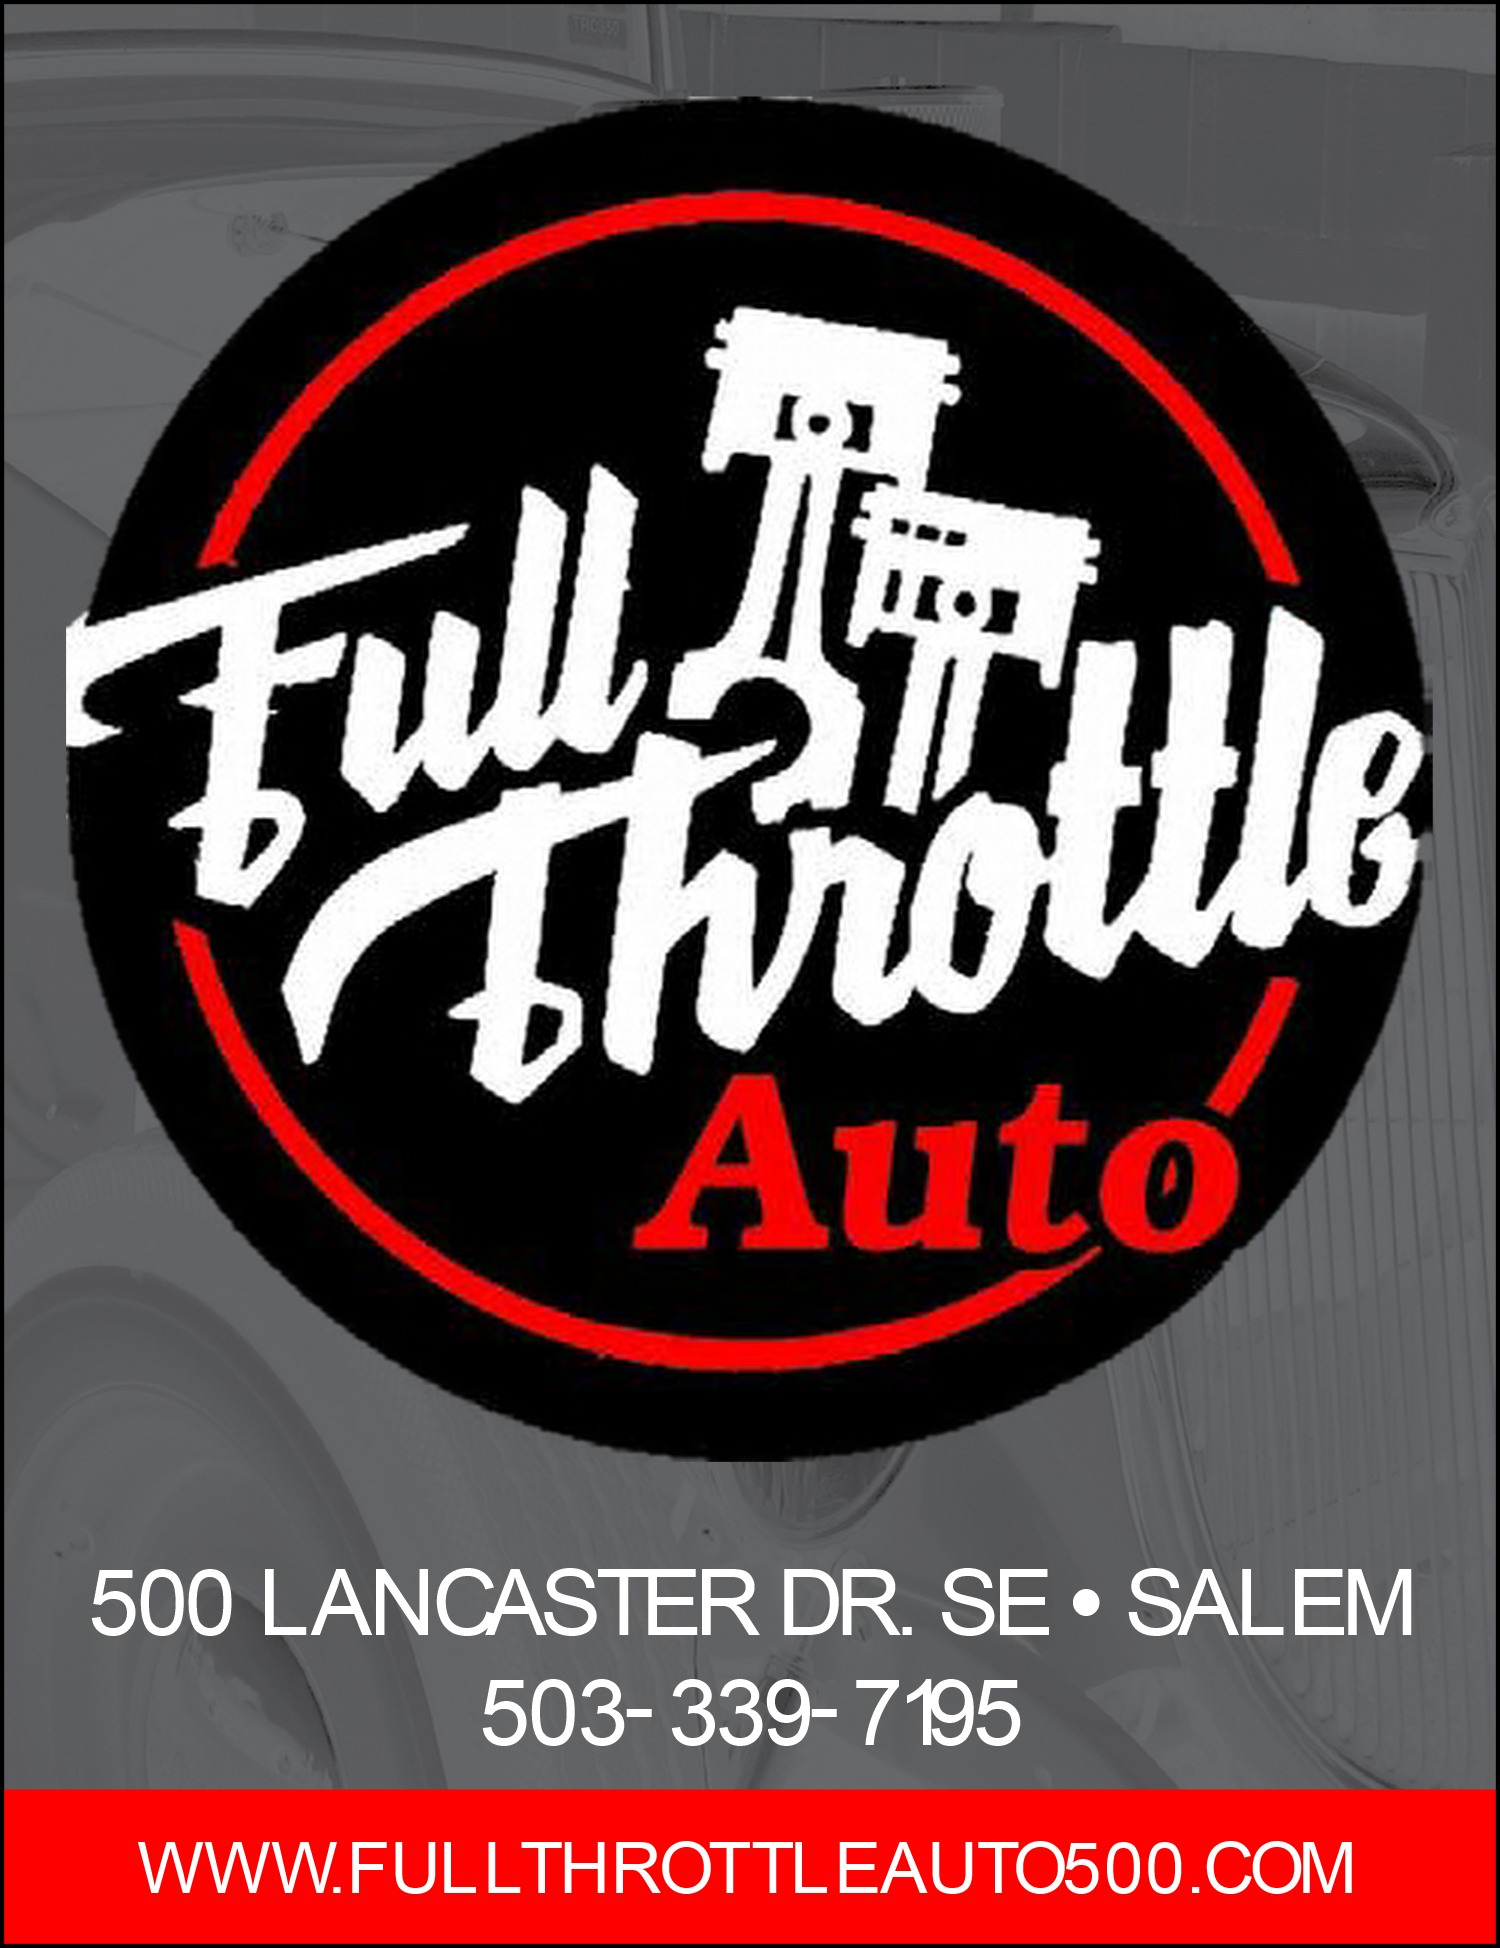 17Full Throttle Auto